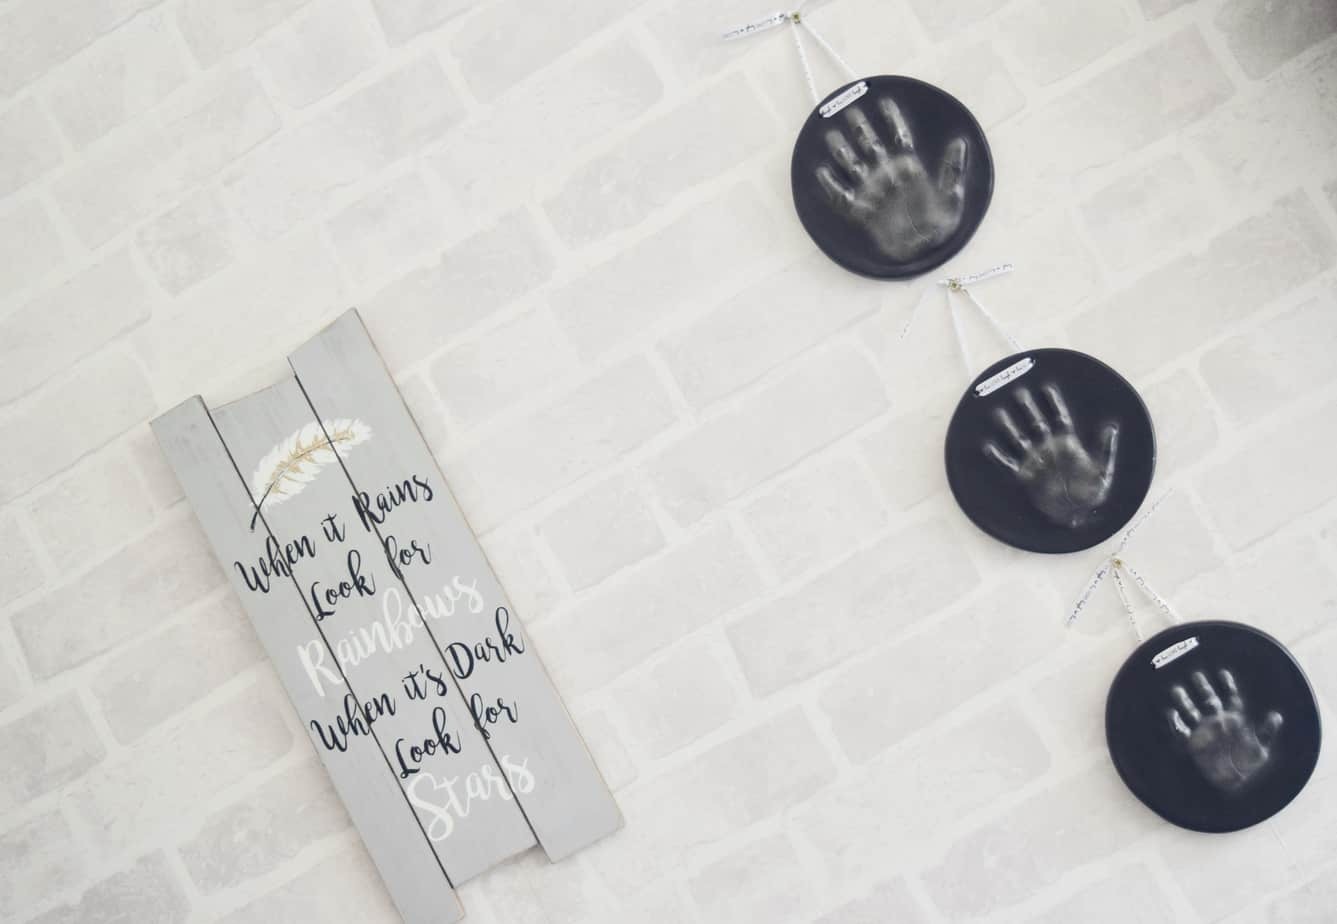 Three imprints in black on the wall